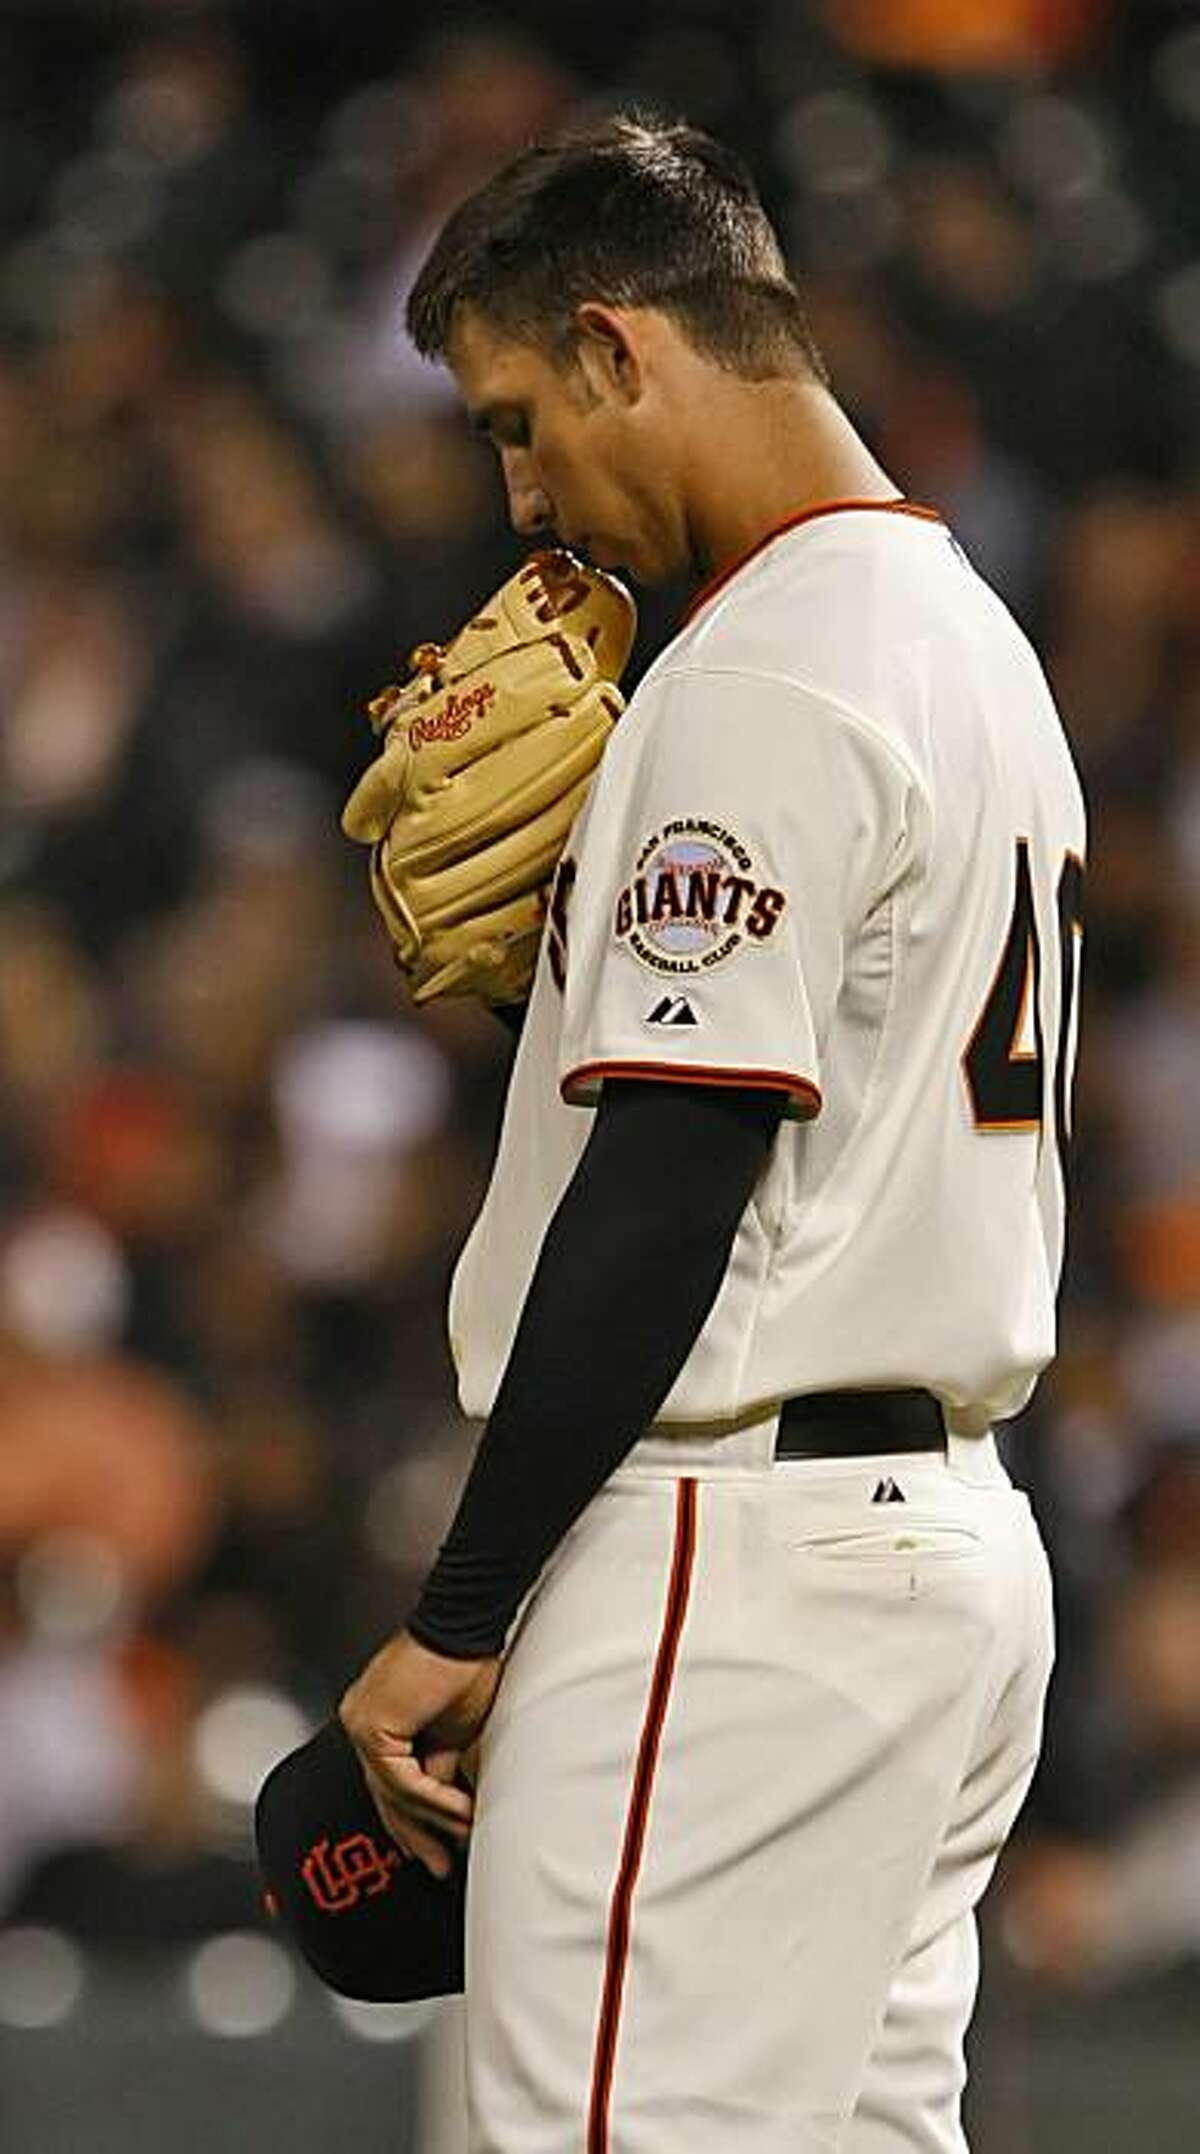 The San Francisco Giants pitcher Madison Bumgarner bows his head at the start of each inning as he pitches against the San Diego Padres Tuesday Sept. 8, 2009, in San Francisco, Calif.